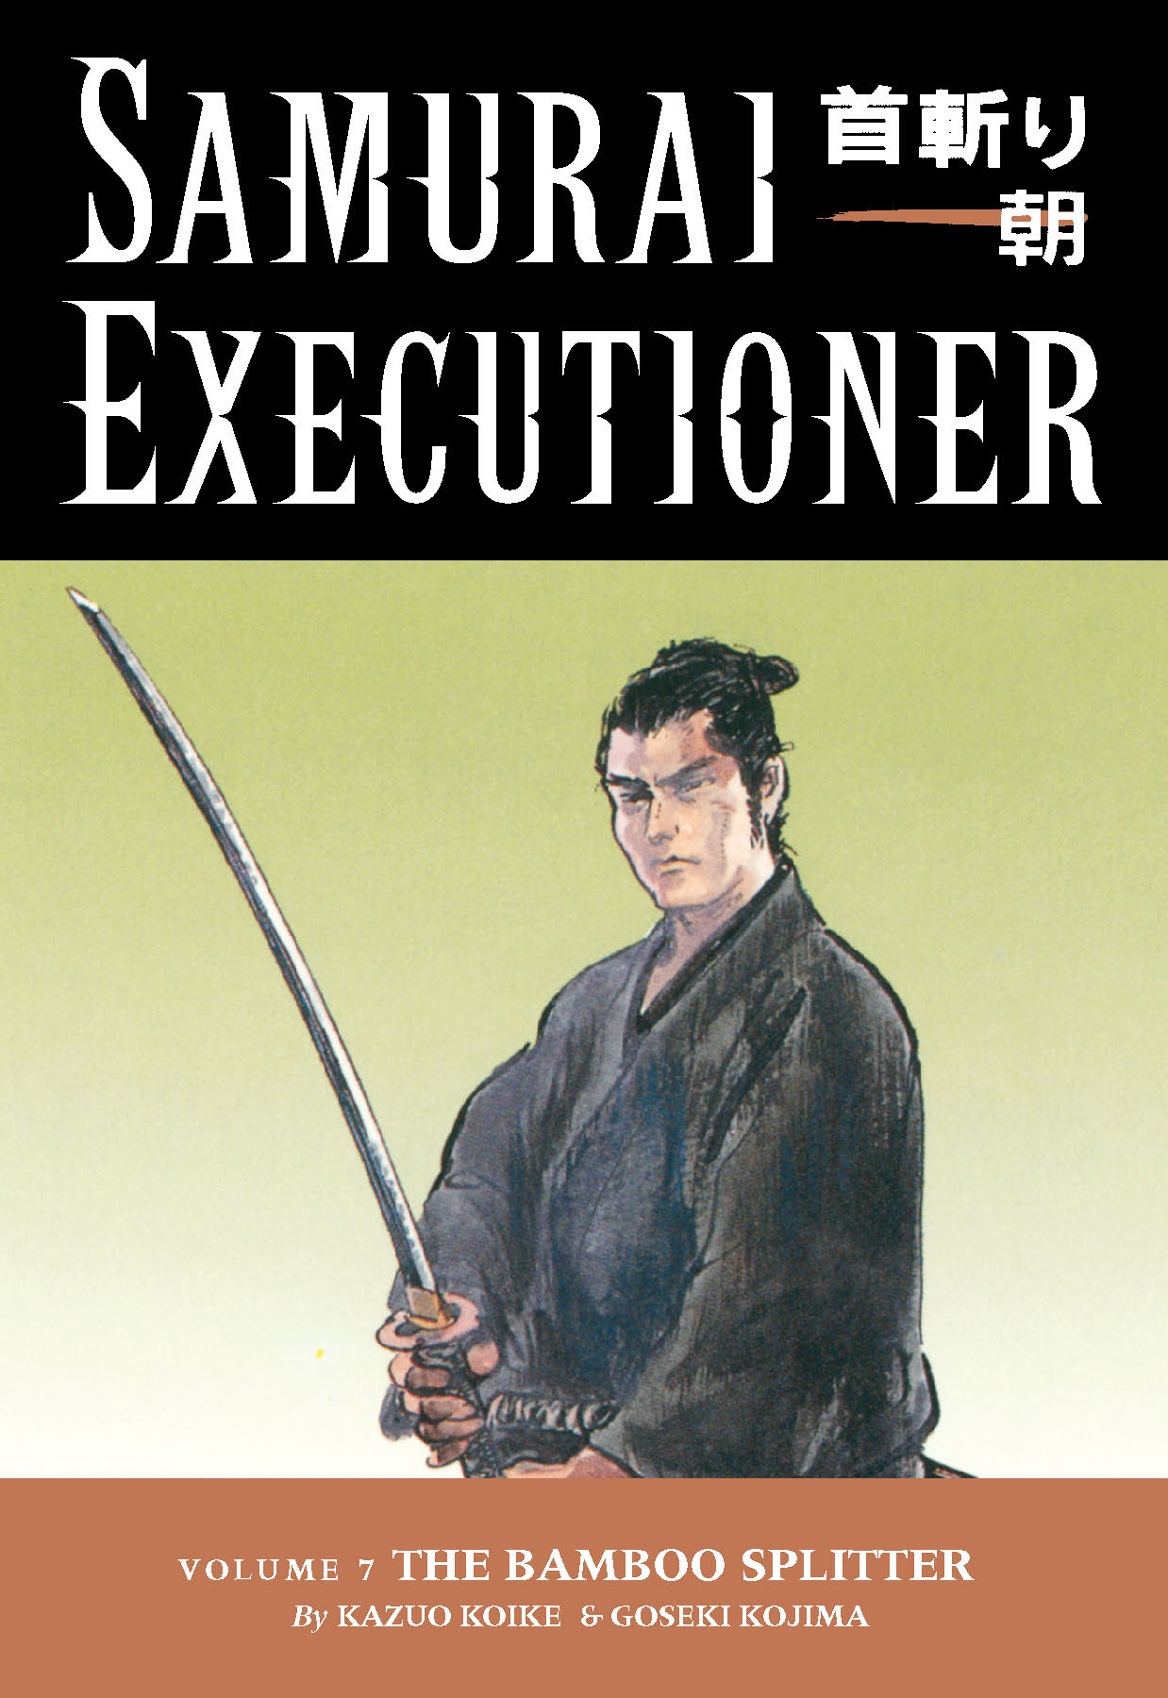 Samurai Executioner Vol. 7